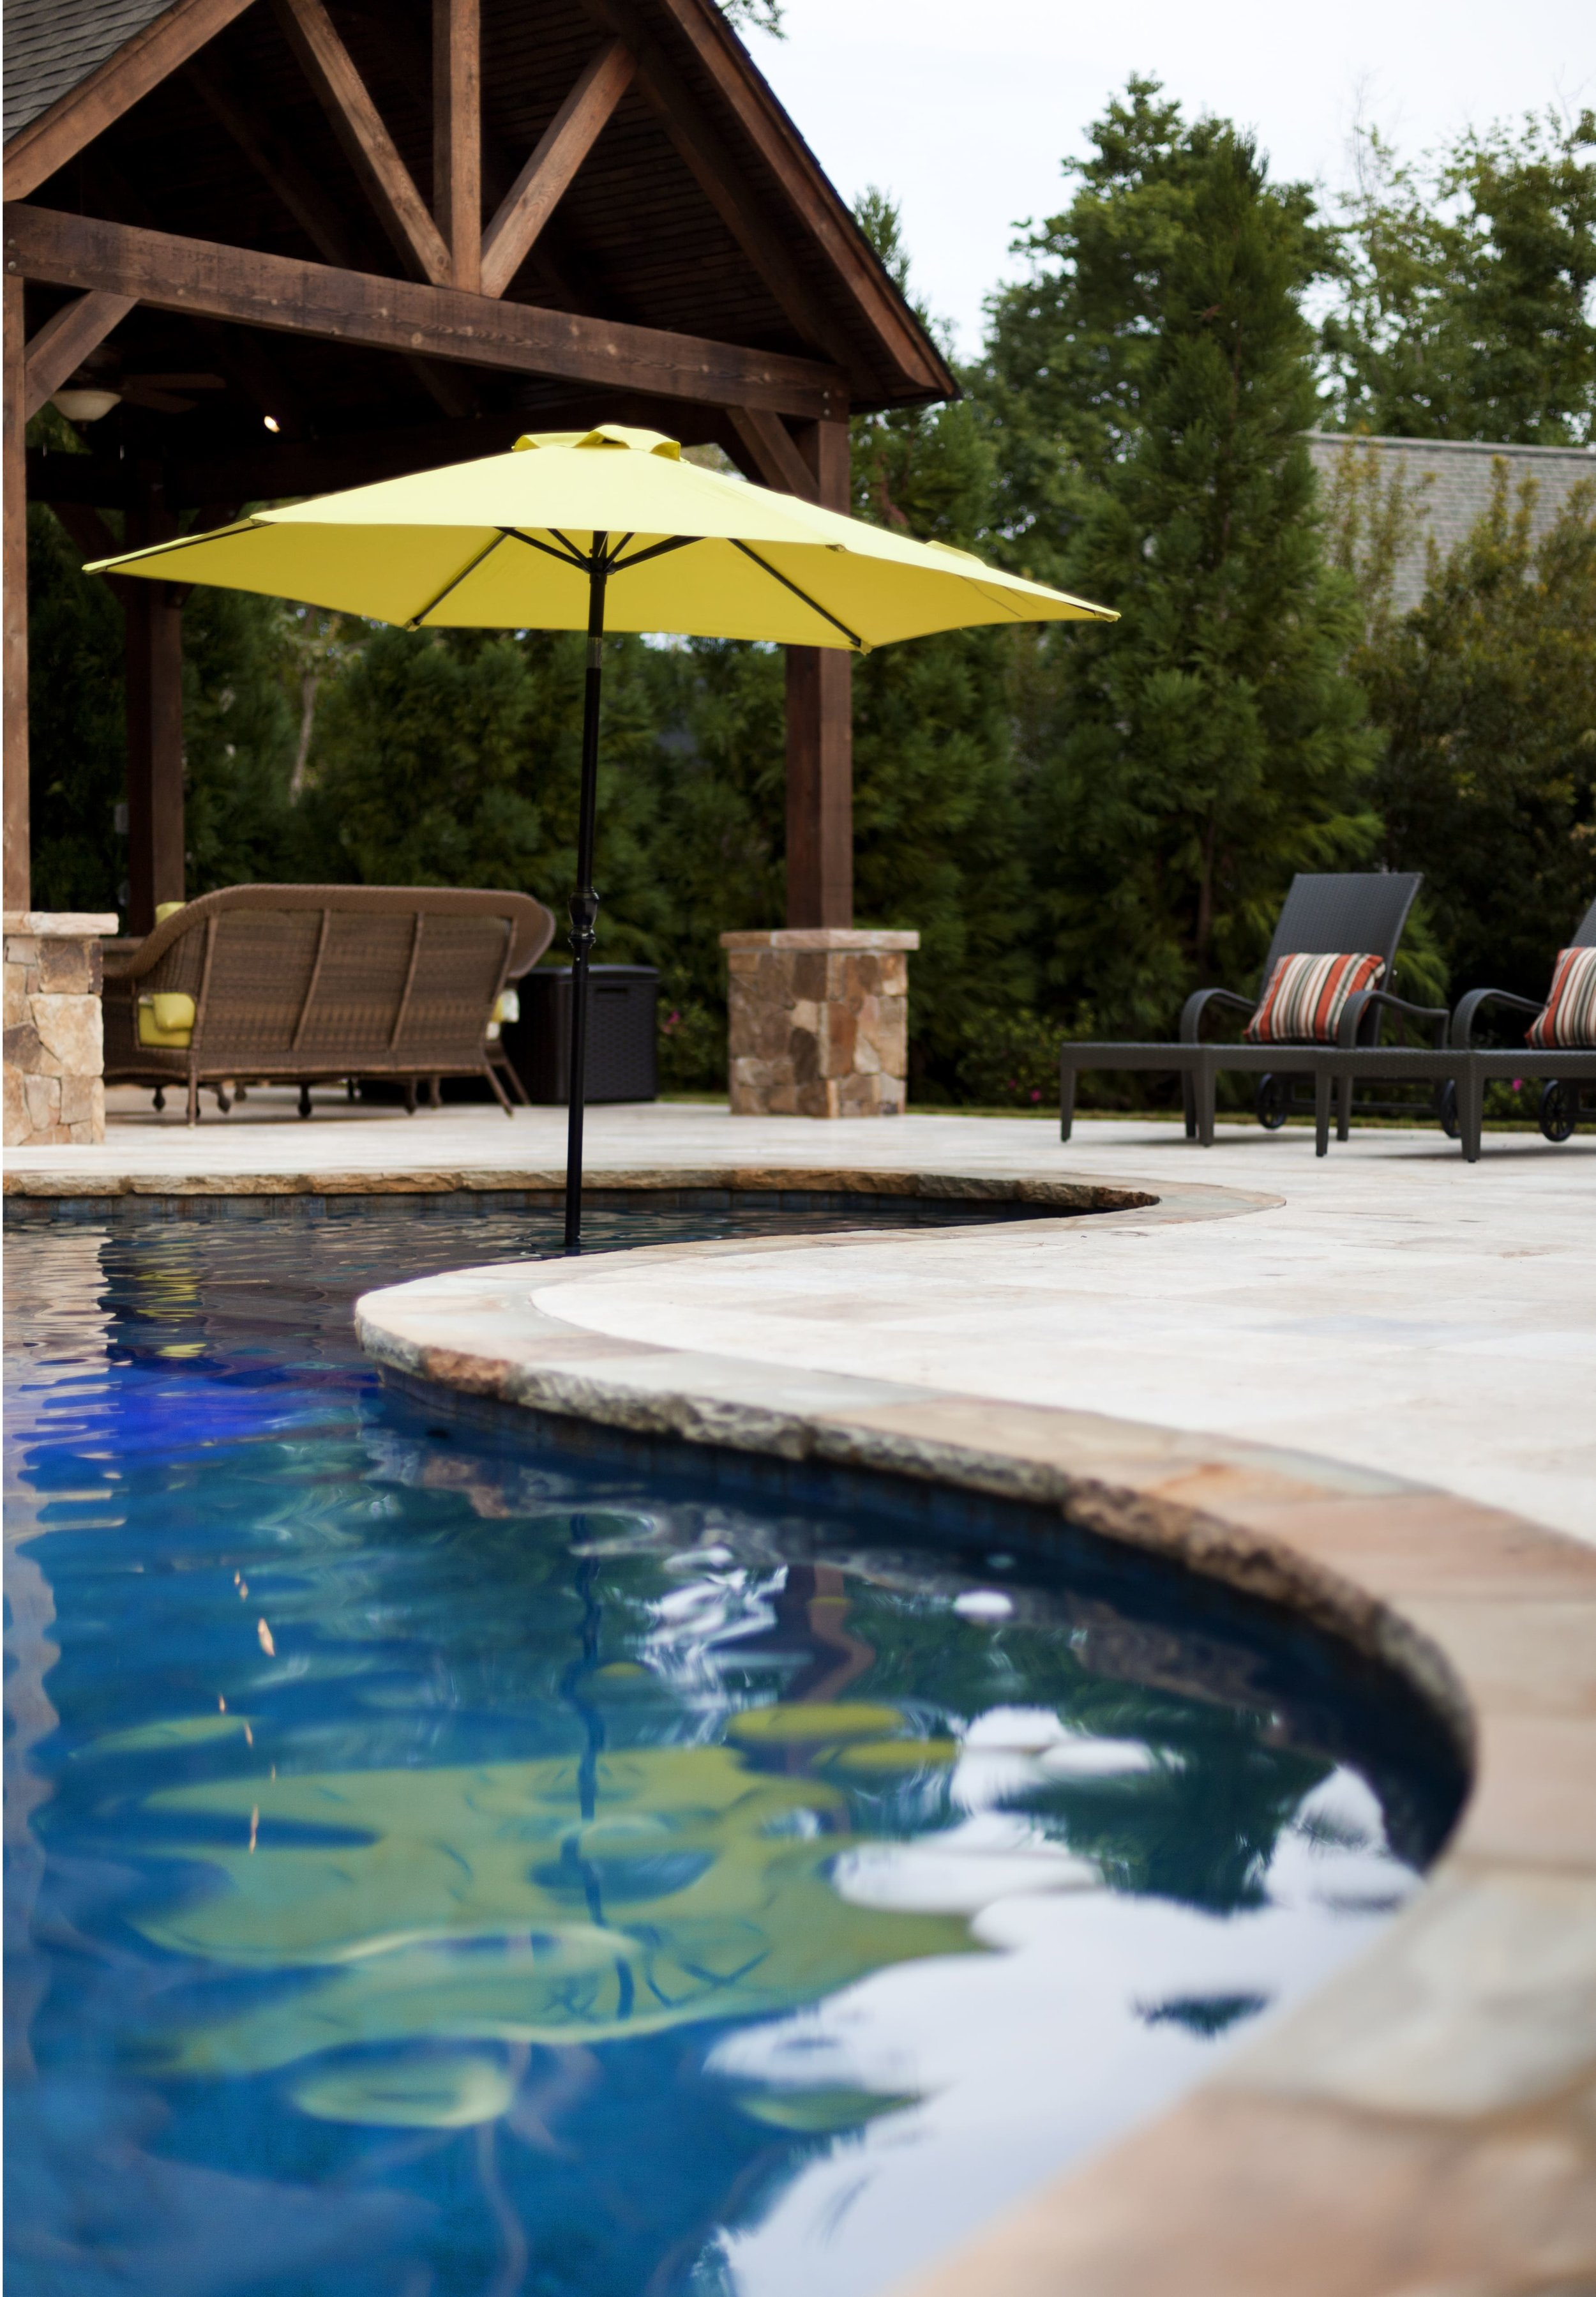 Chiseled edge on the stone coping ties in to the rustic feel of all the stained wood around. The umbrella that is in the pool provides shade for those who want it, while still allowing them to be in the pool.